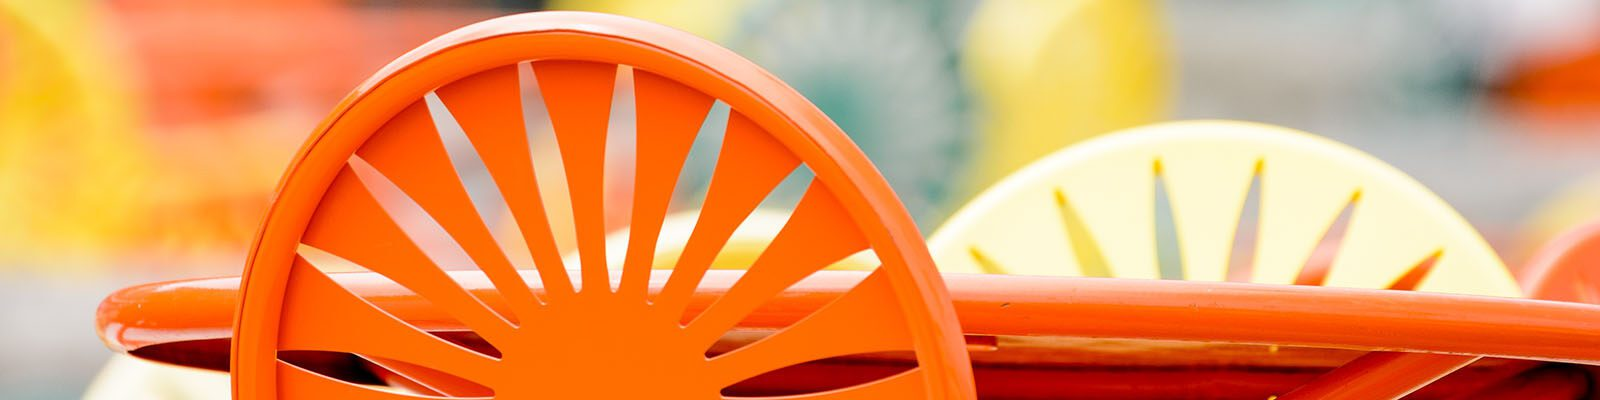 Chairs featuring an iconic sunburst pattern populate the Memorial Union Terrace at the University of Wisconsin-Madison